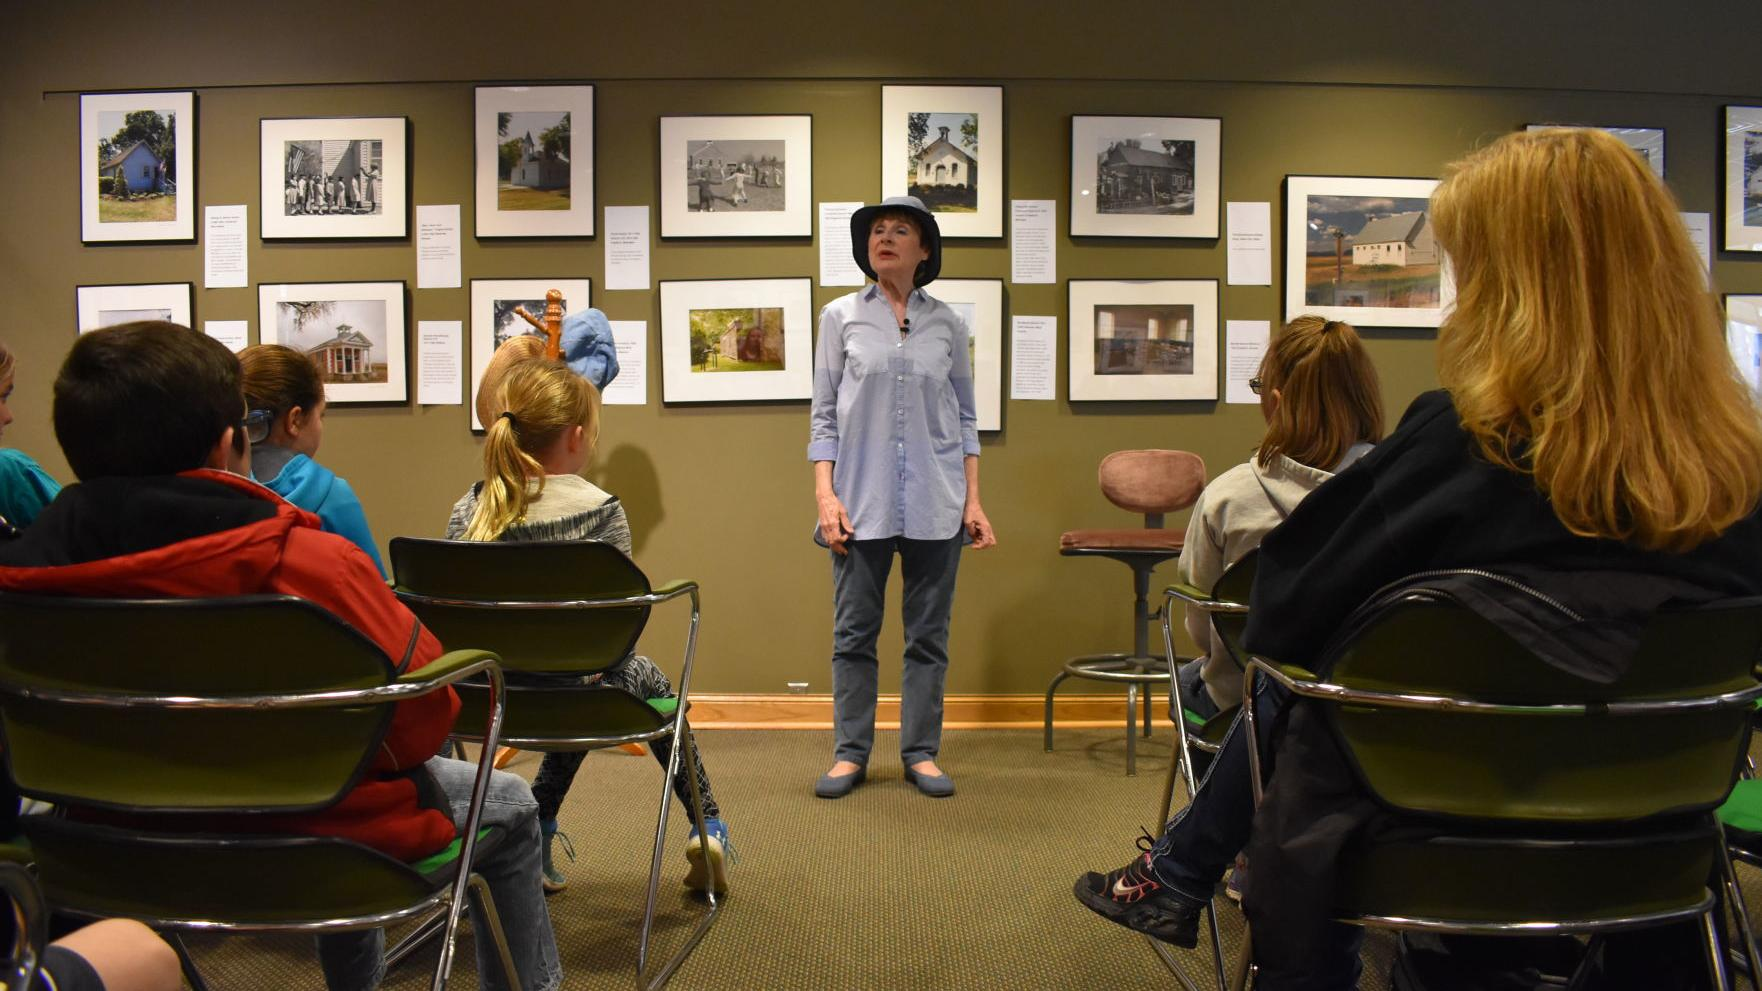 Storyteller event draws imagination while educating